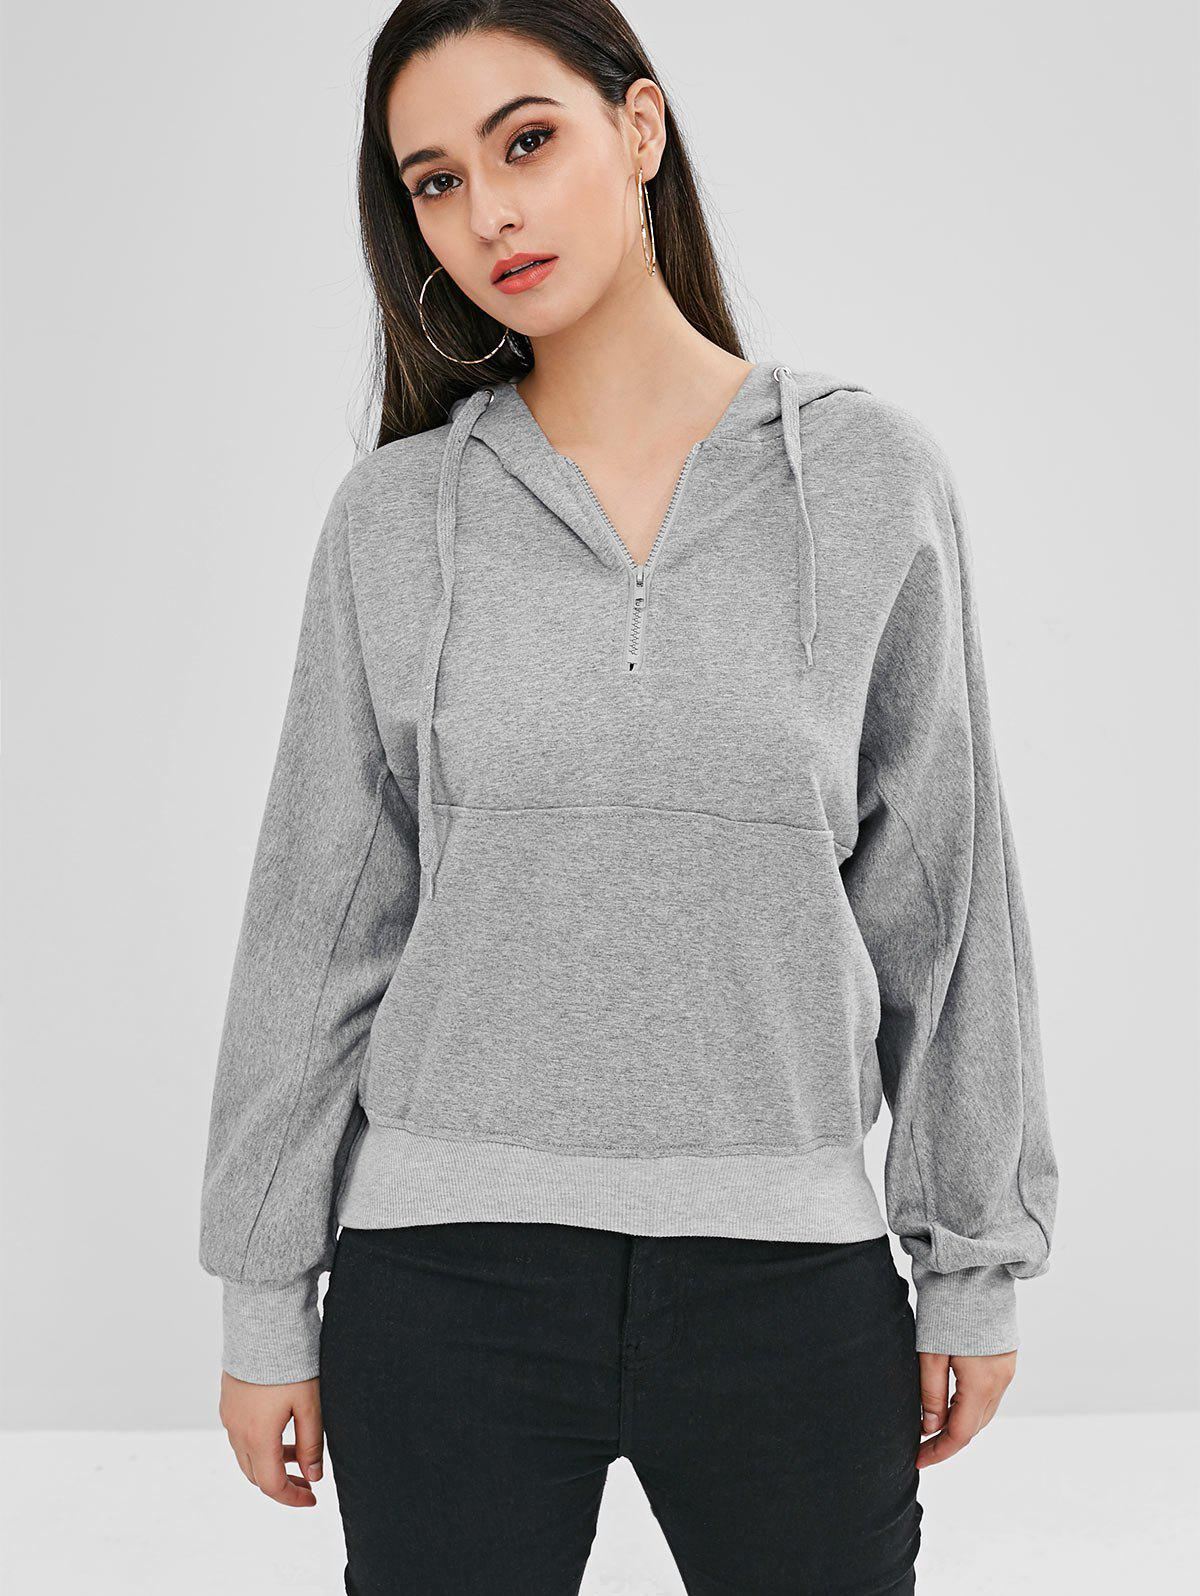 ZAFUL Drawstring Half Zip Pocket Hoodie, Gray cloud